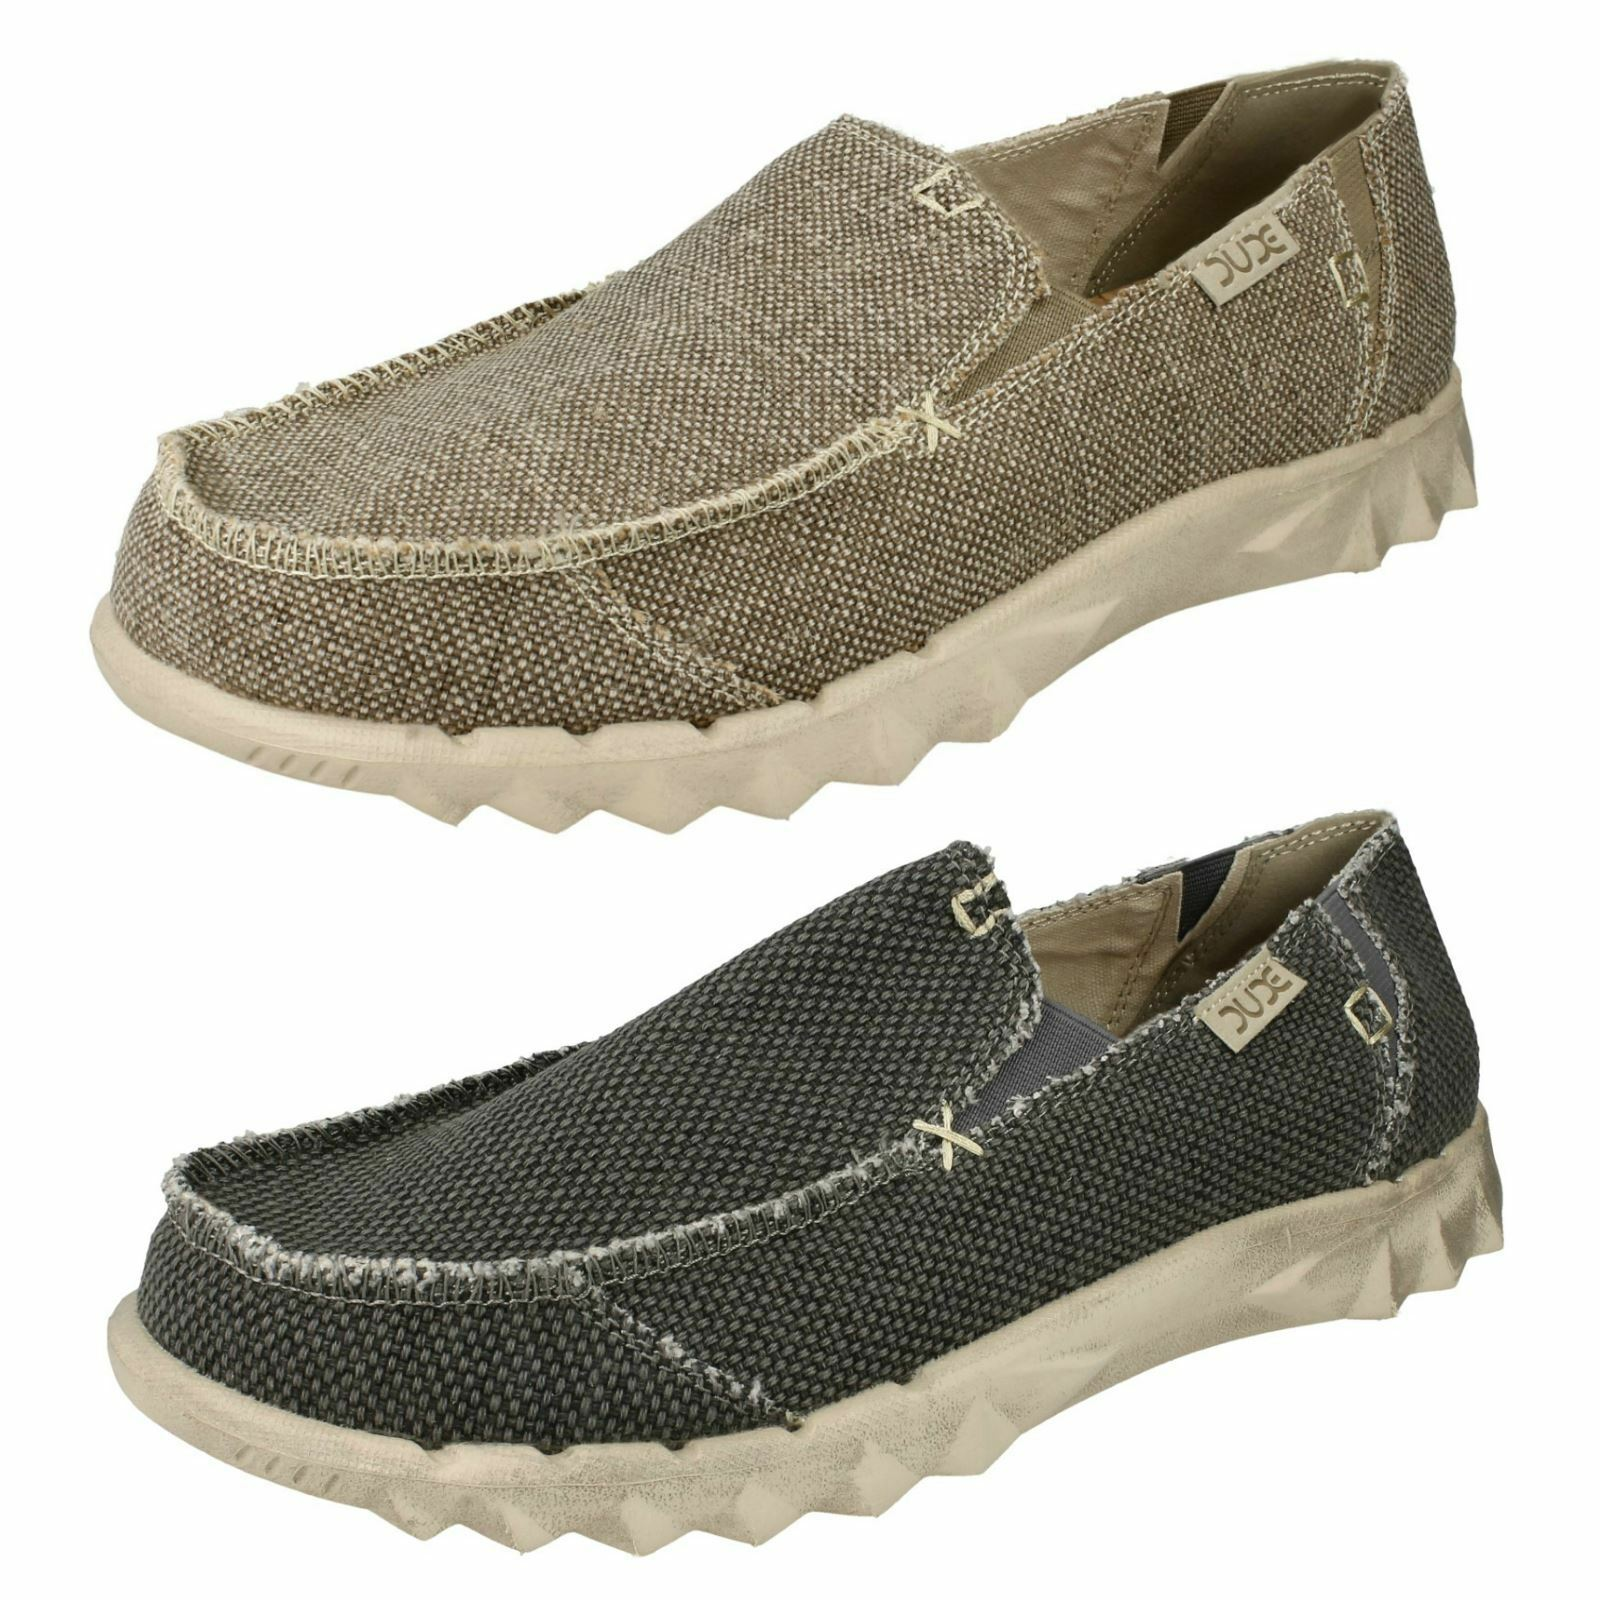 Hey Dude Mens Casual Canvas Shoes 'Farty Braided'